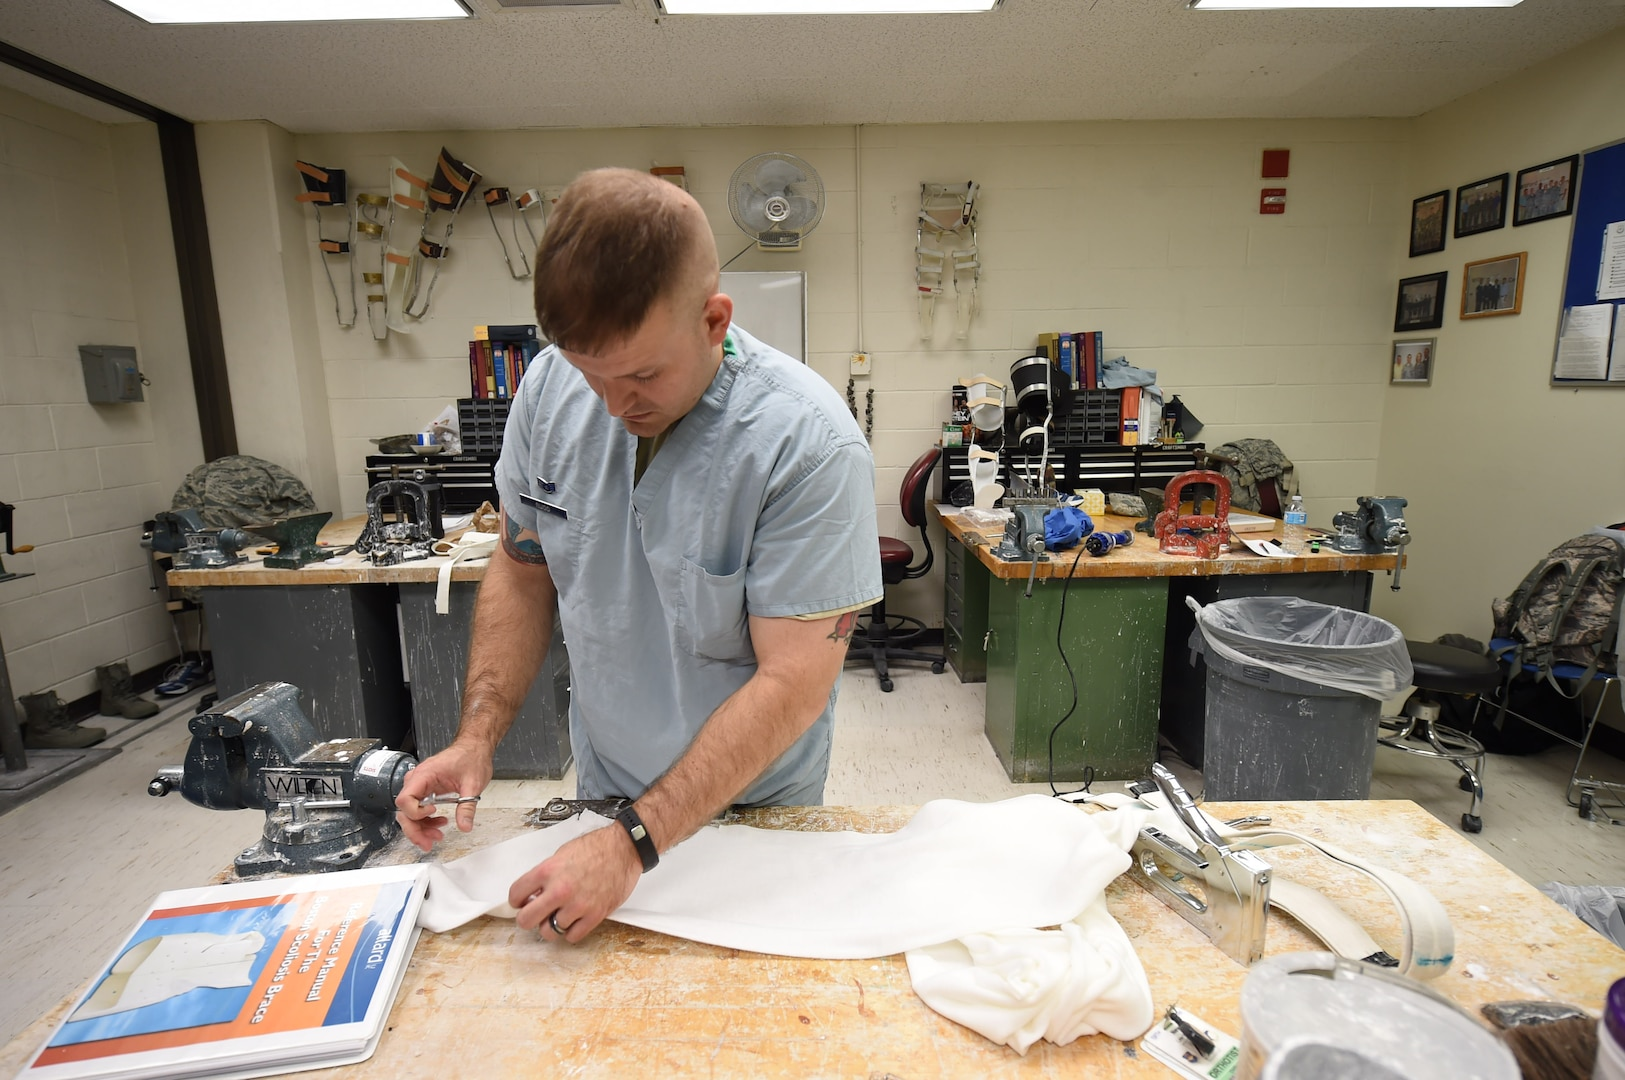 Staff Sgt. Devin Rudd, a student in the orthotics program, measures plaster cloth to make a body jacket orthoses at the Wilford Hall Ambulatory Surgical Center, Joint Base San Antonio-Lackland, Texas, Aug. 24, 2016. (U.S. Air Force photo/Staff Sgt. Jerilyn Quintanilla)